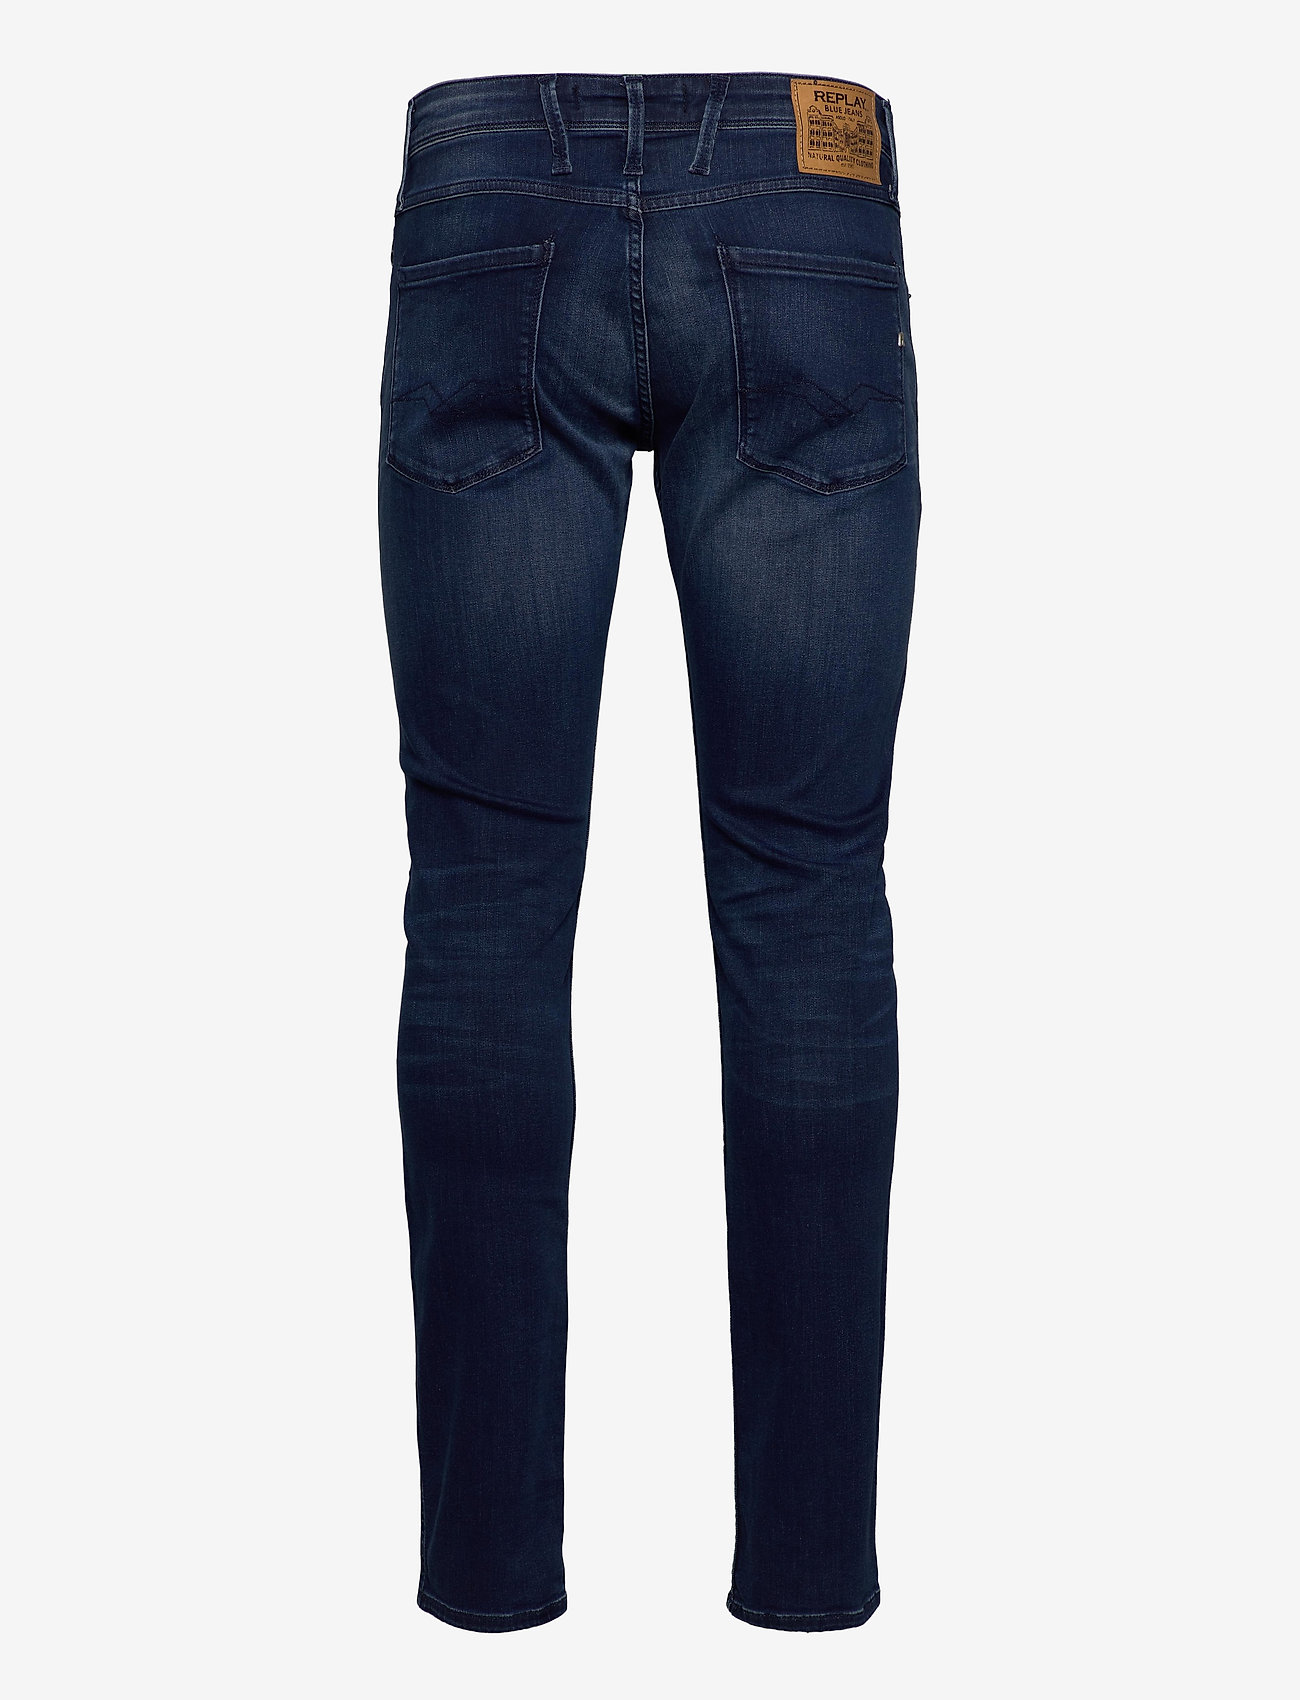 Replay - ANBASS - slim jeans - medium blue - 1